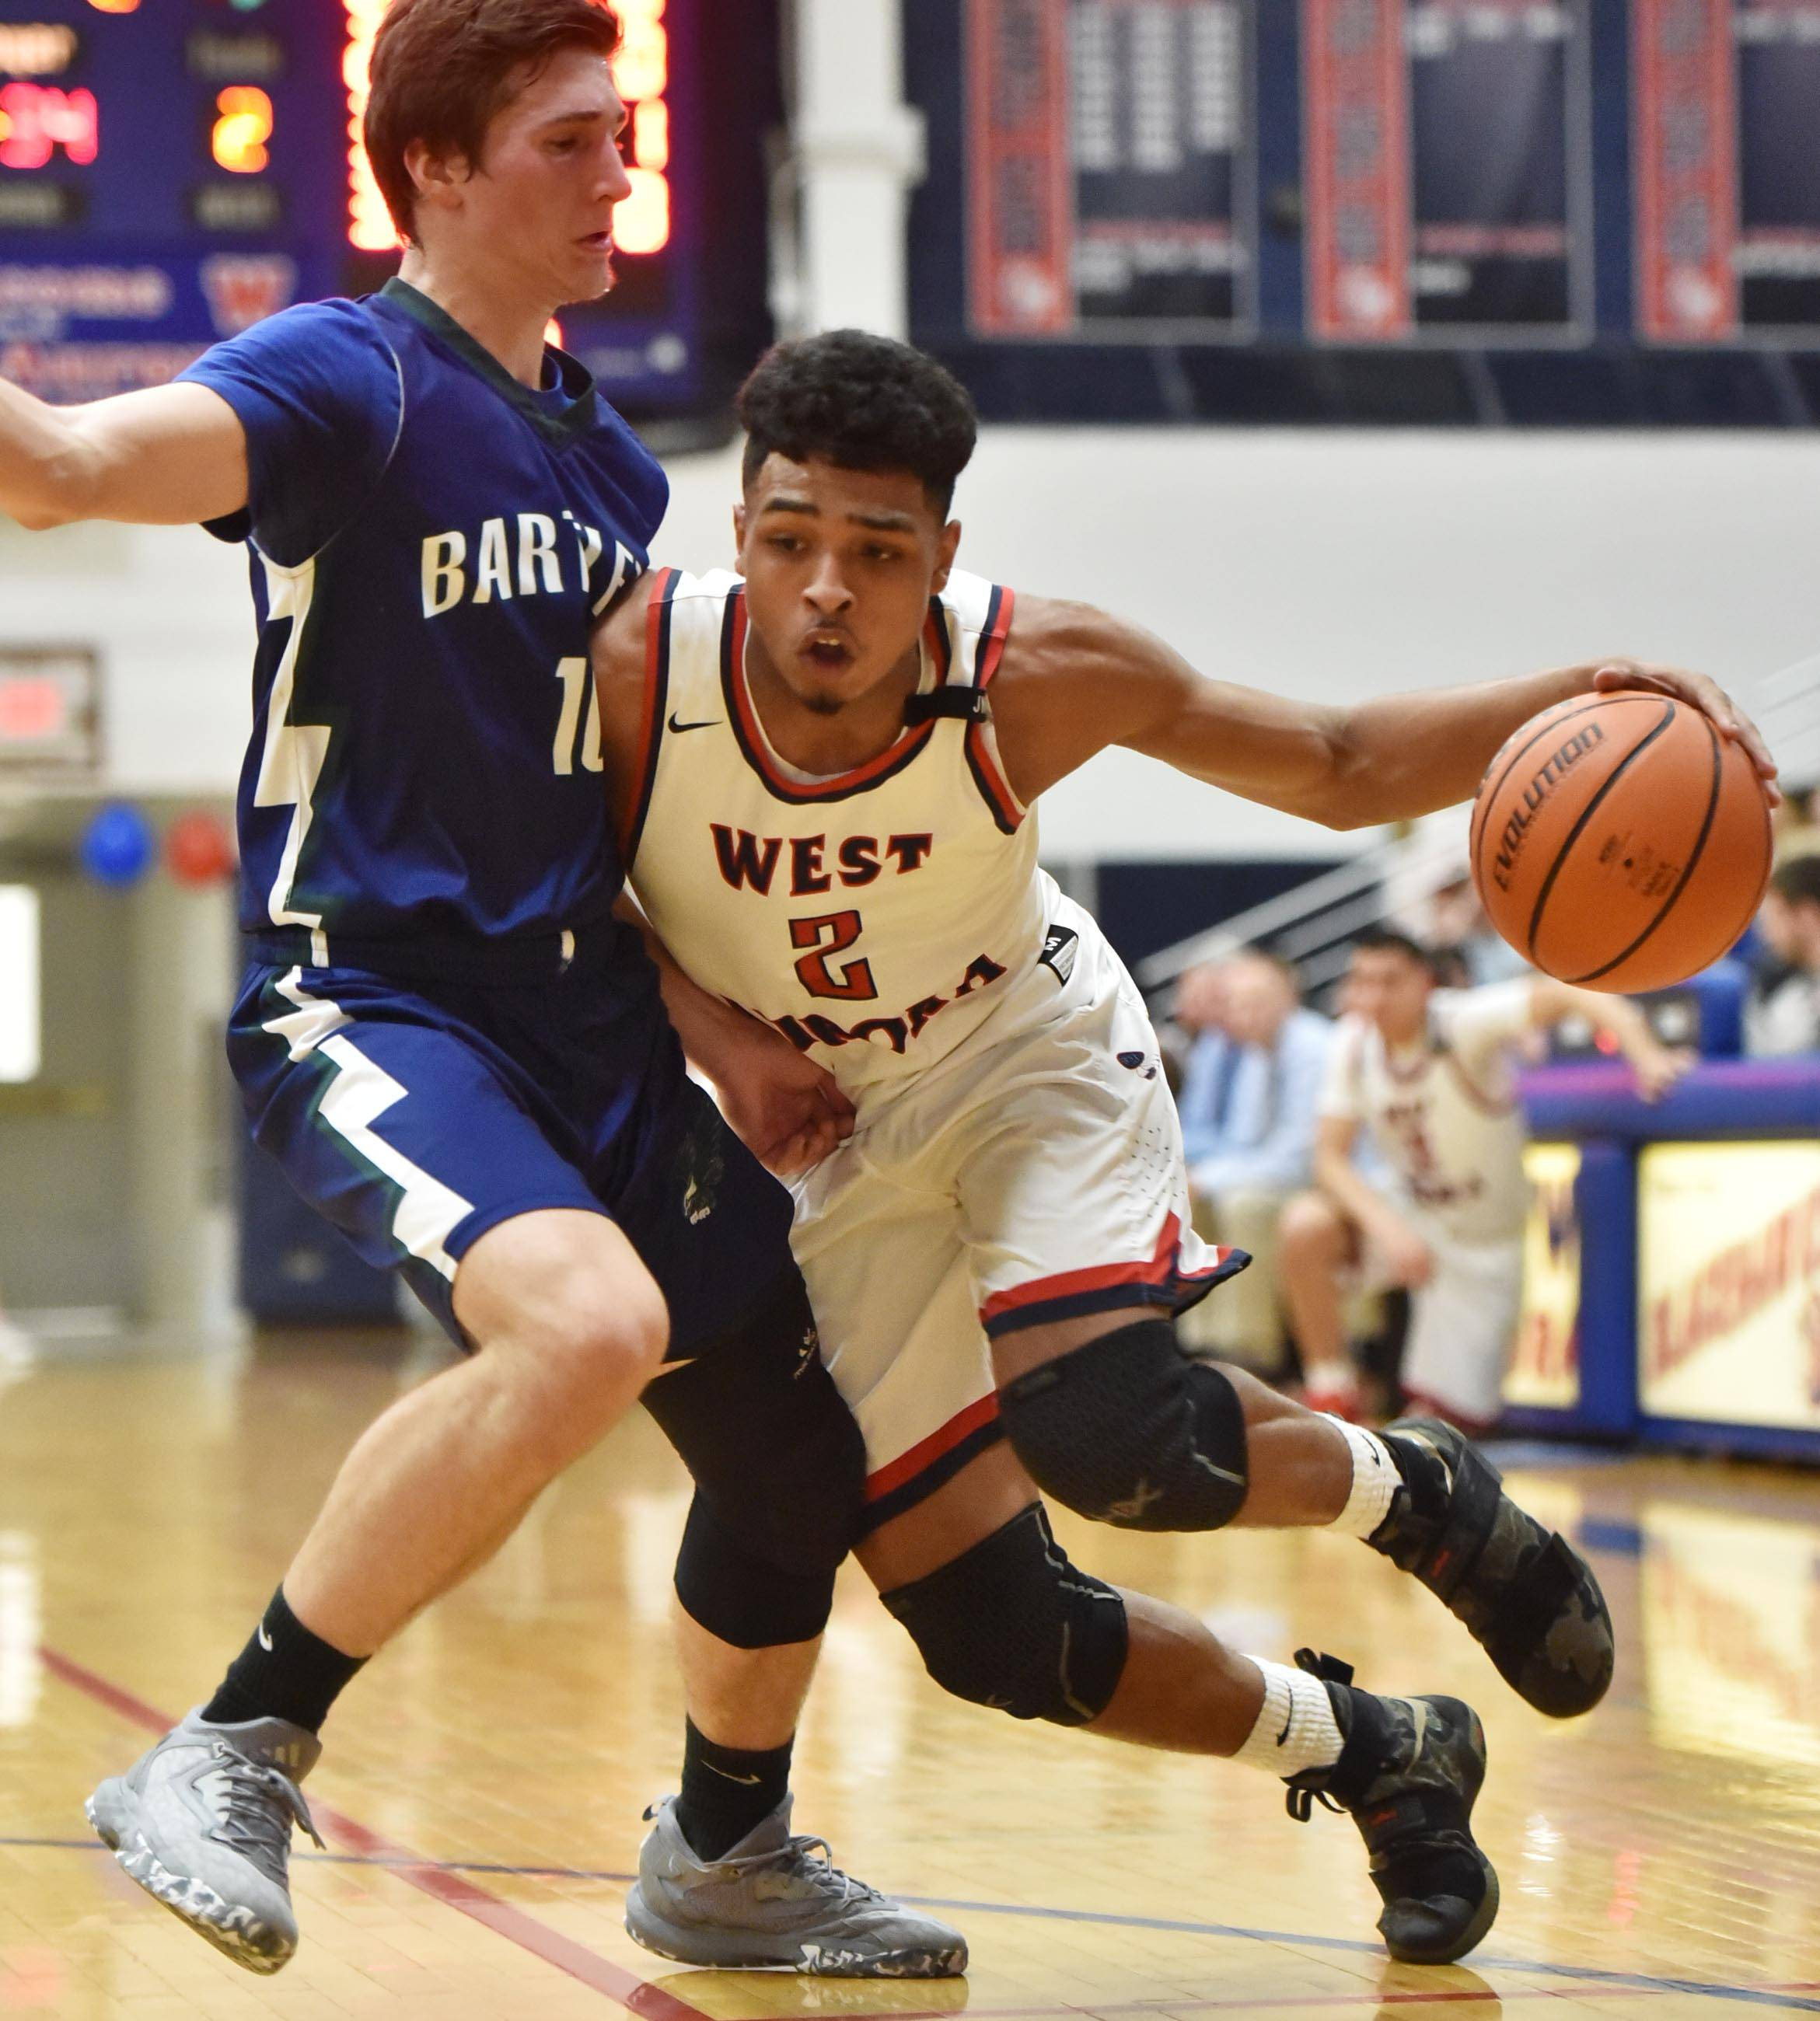 Bartlett's Tomas Vikonis, pictured guarding West Aurora's Camron Donatlan Wednesday in Aurora, and his Hawks teammates are part of an extremely competitive field at the Class 4A Larkin regional. West Aurora earned the No. 5 seed in the Lincoln-Way East sectional.